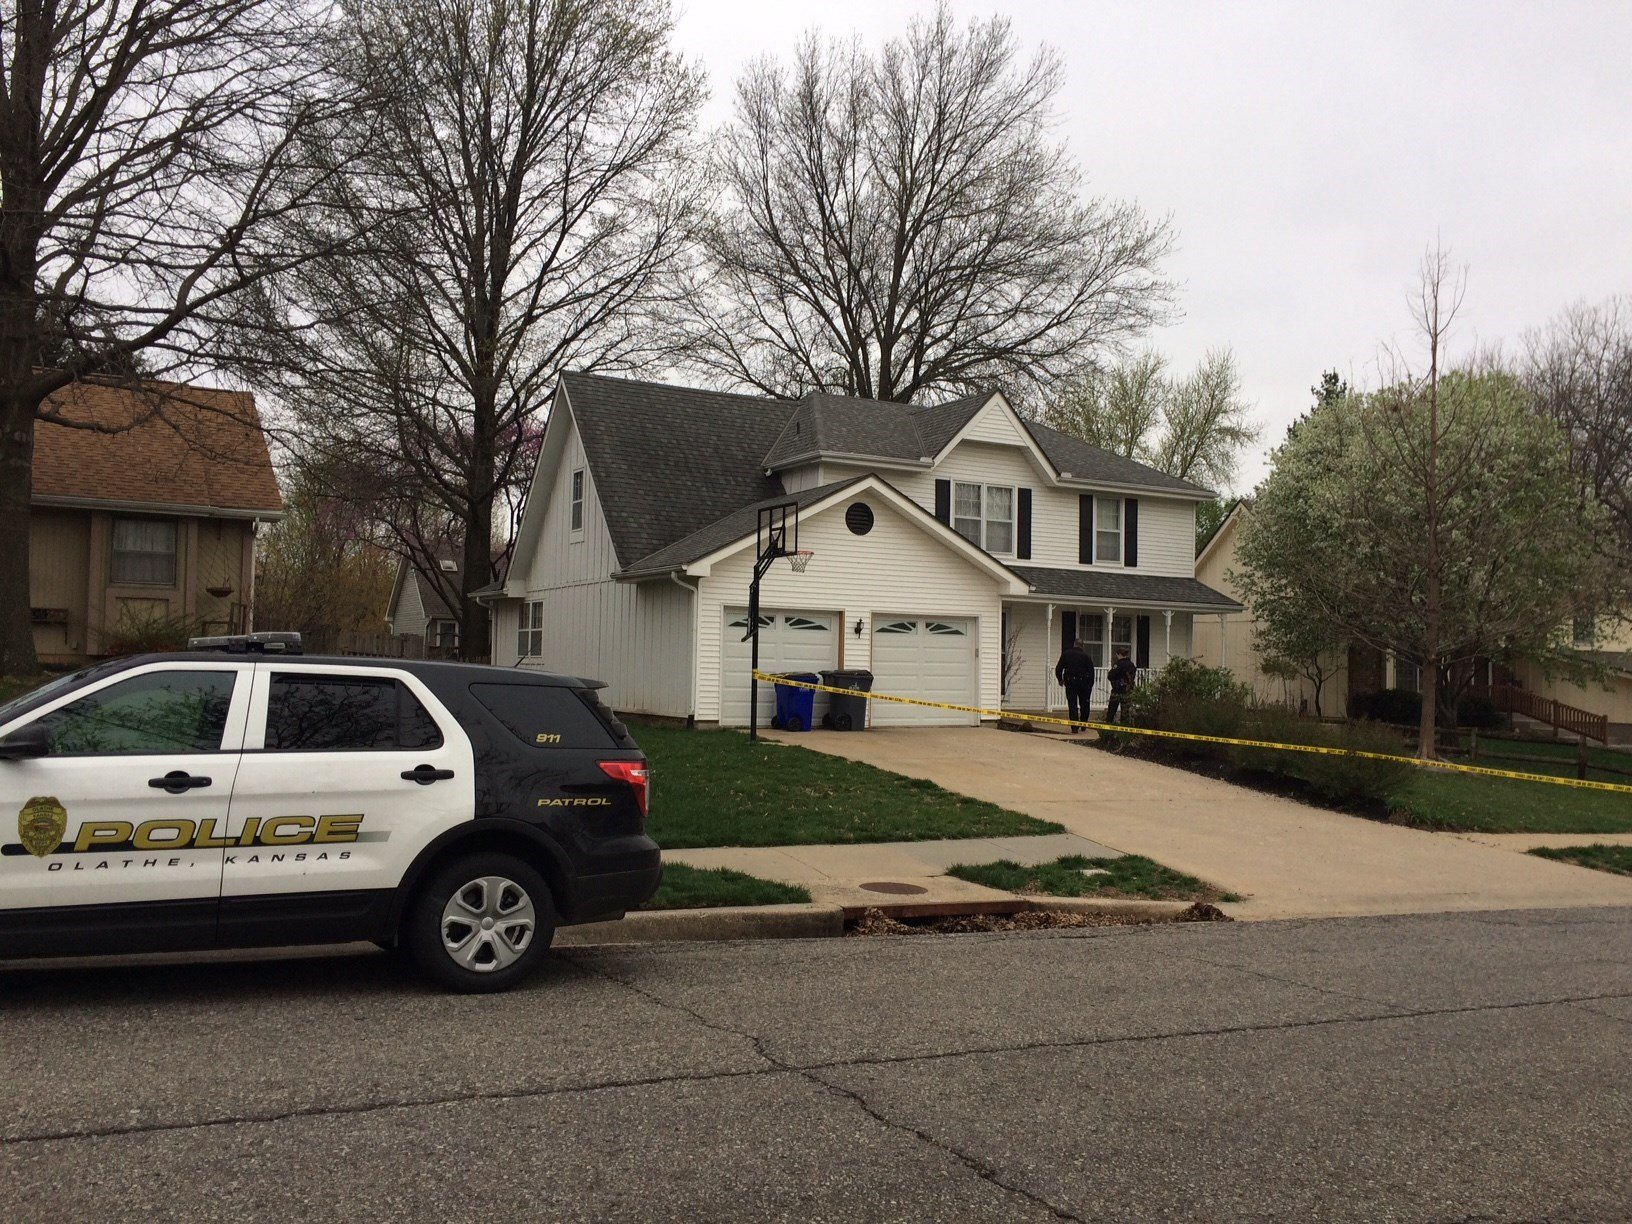 The stabbing is believed to be domestic and the woman's injuries are not life-threatening. (Eric Smith/KCTV)